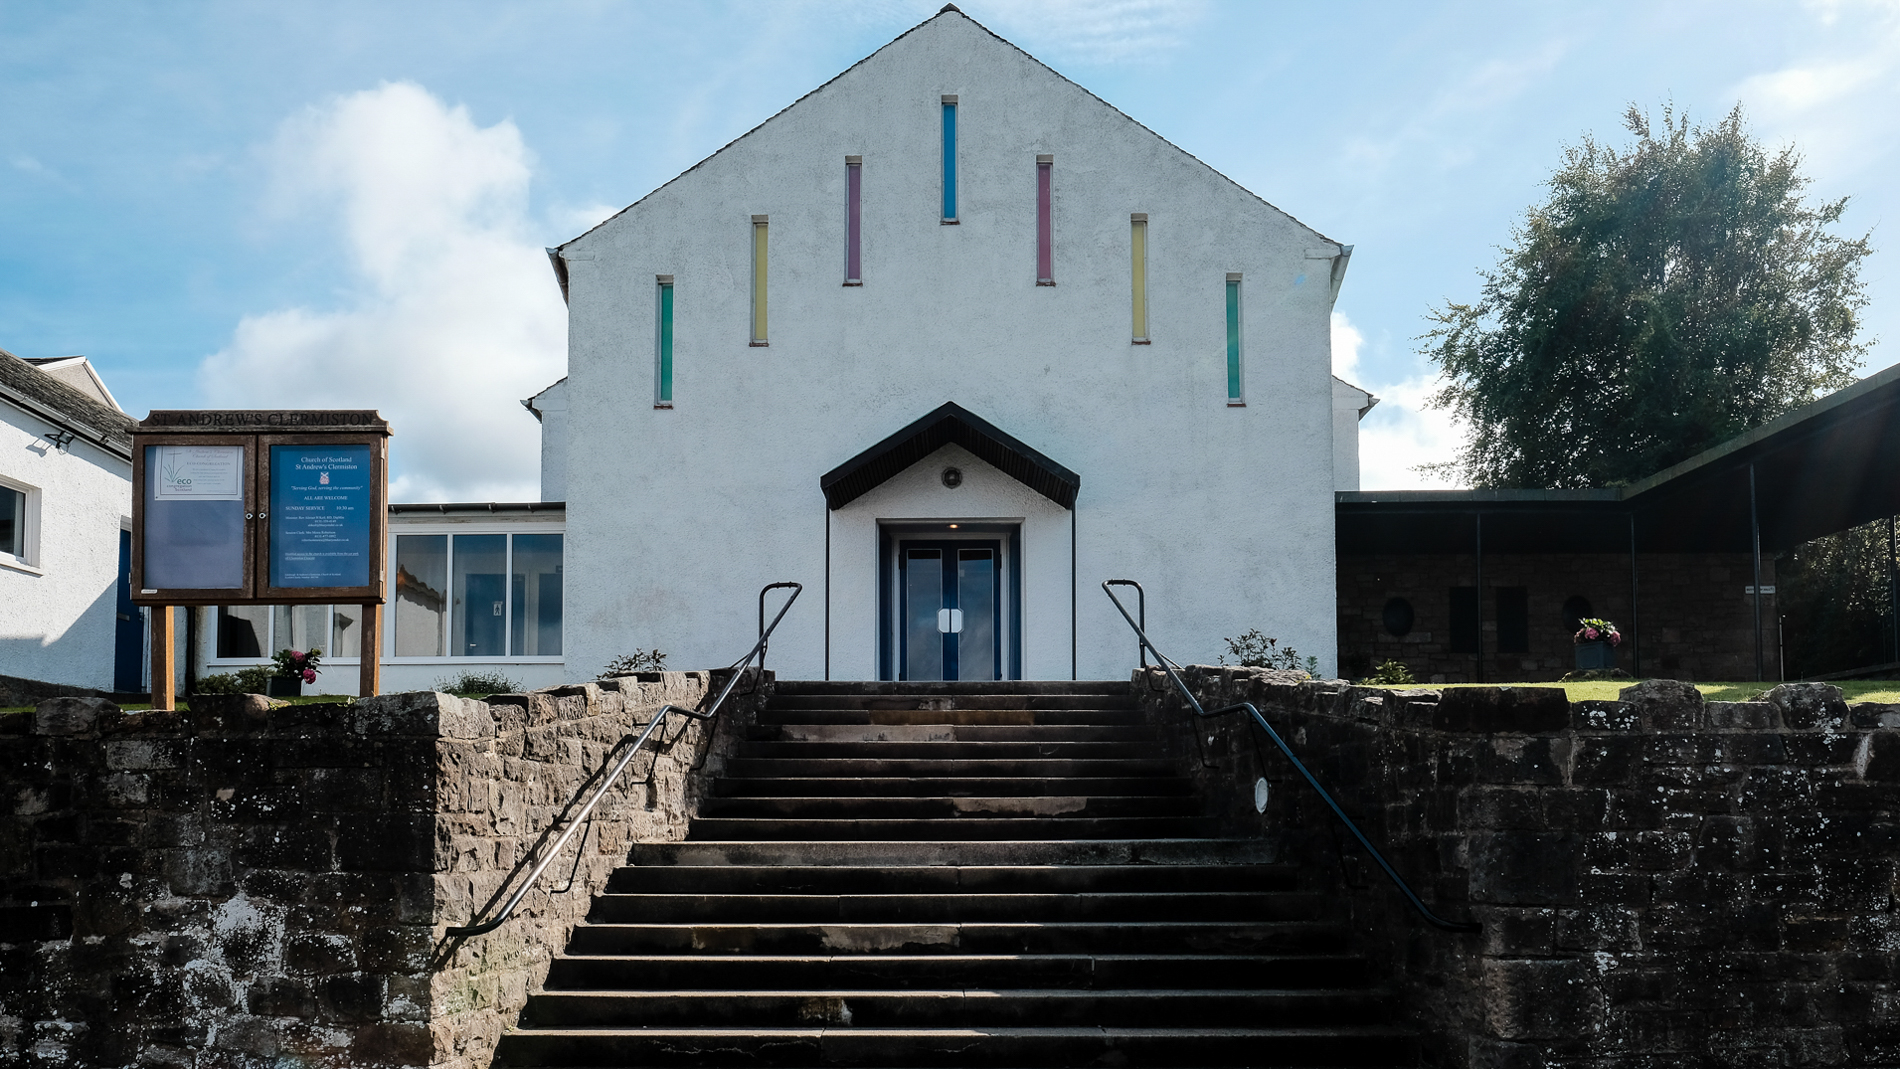 Colour photograph of the front of Saint Andrew's Church in Clermiston, Edinburgh on the day of a wedding